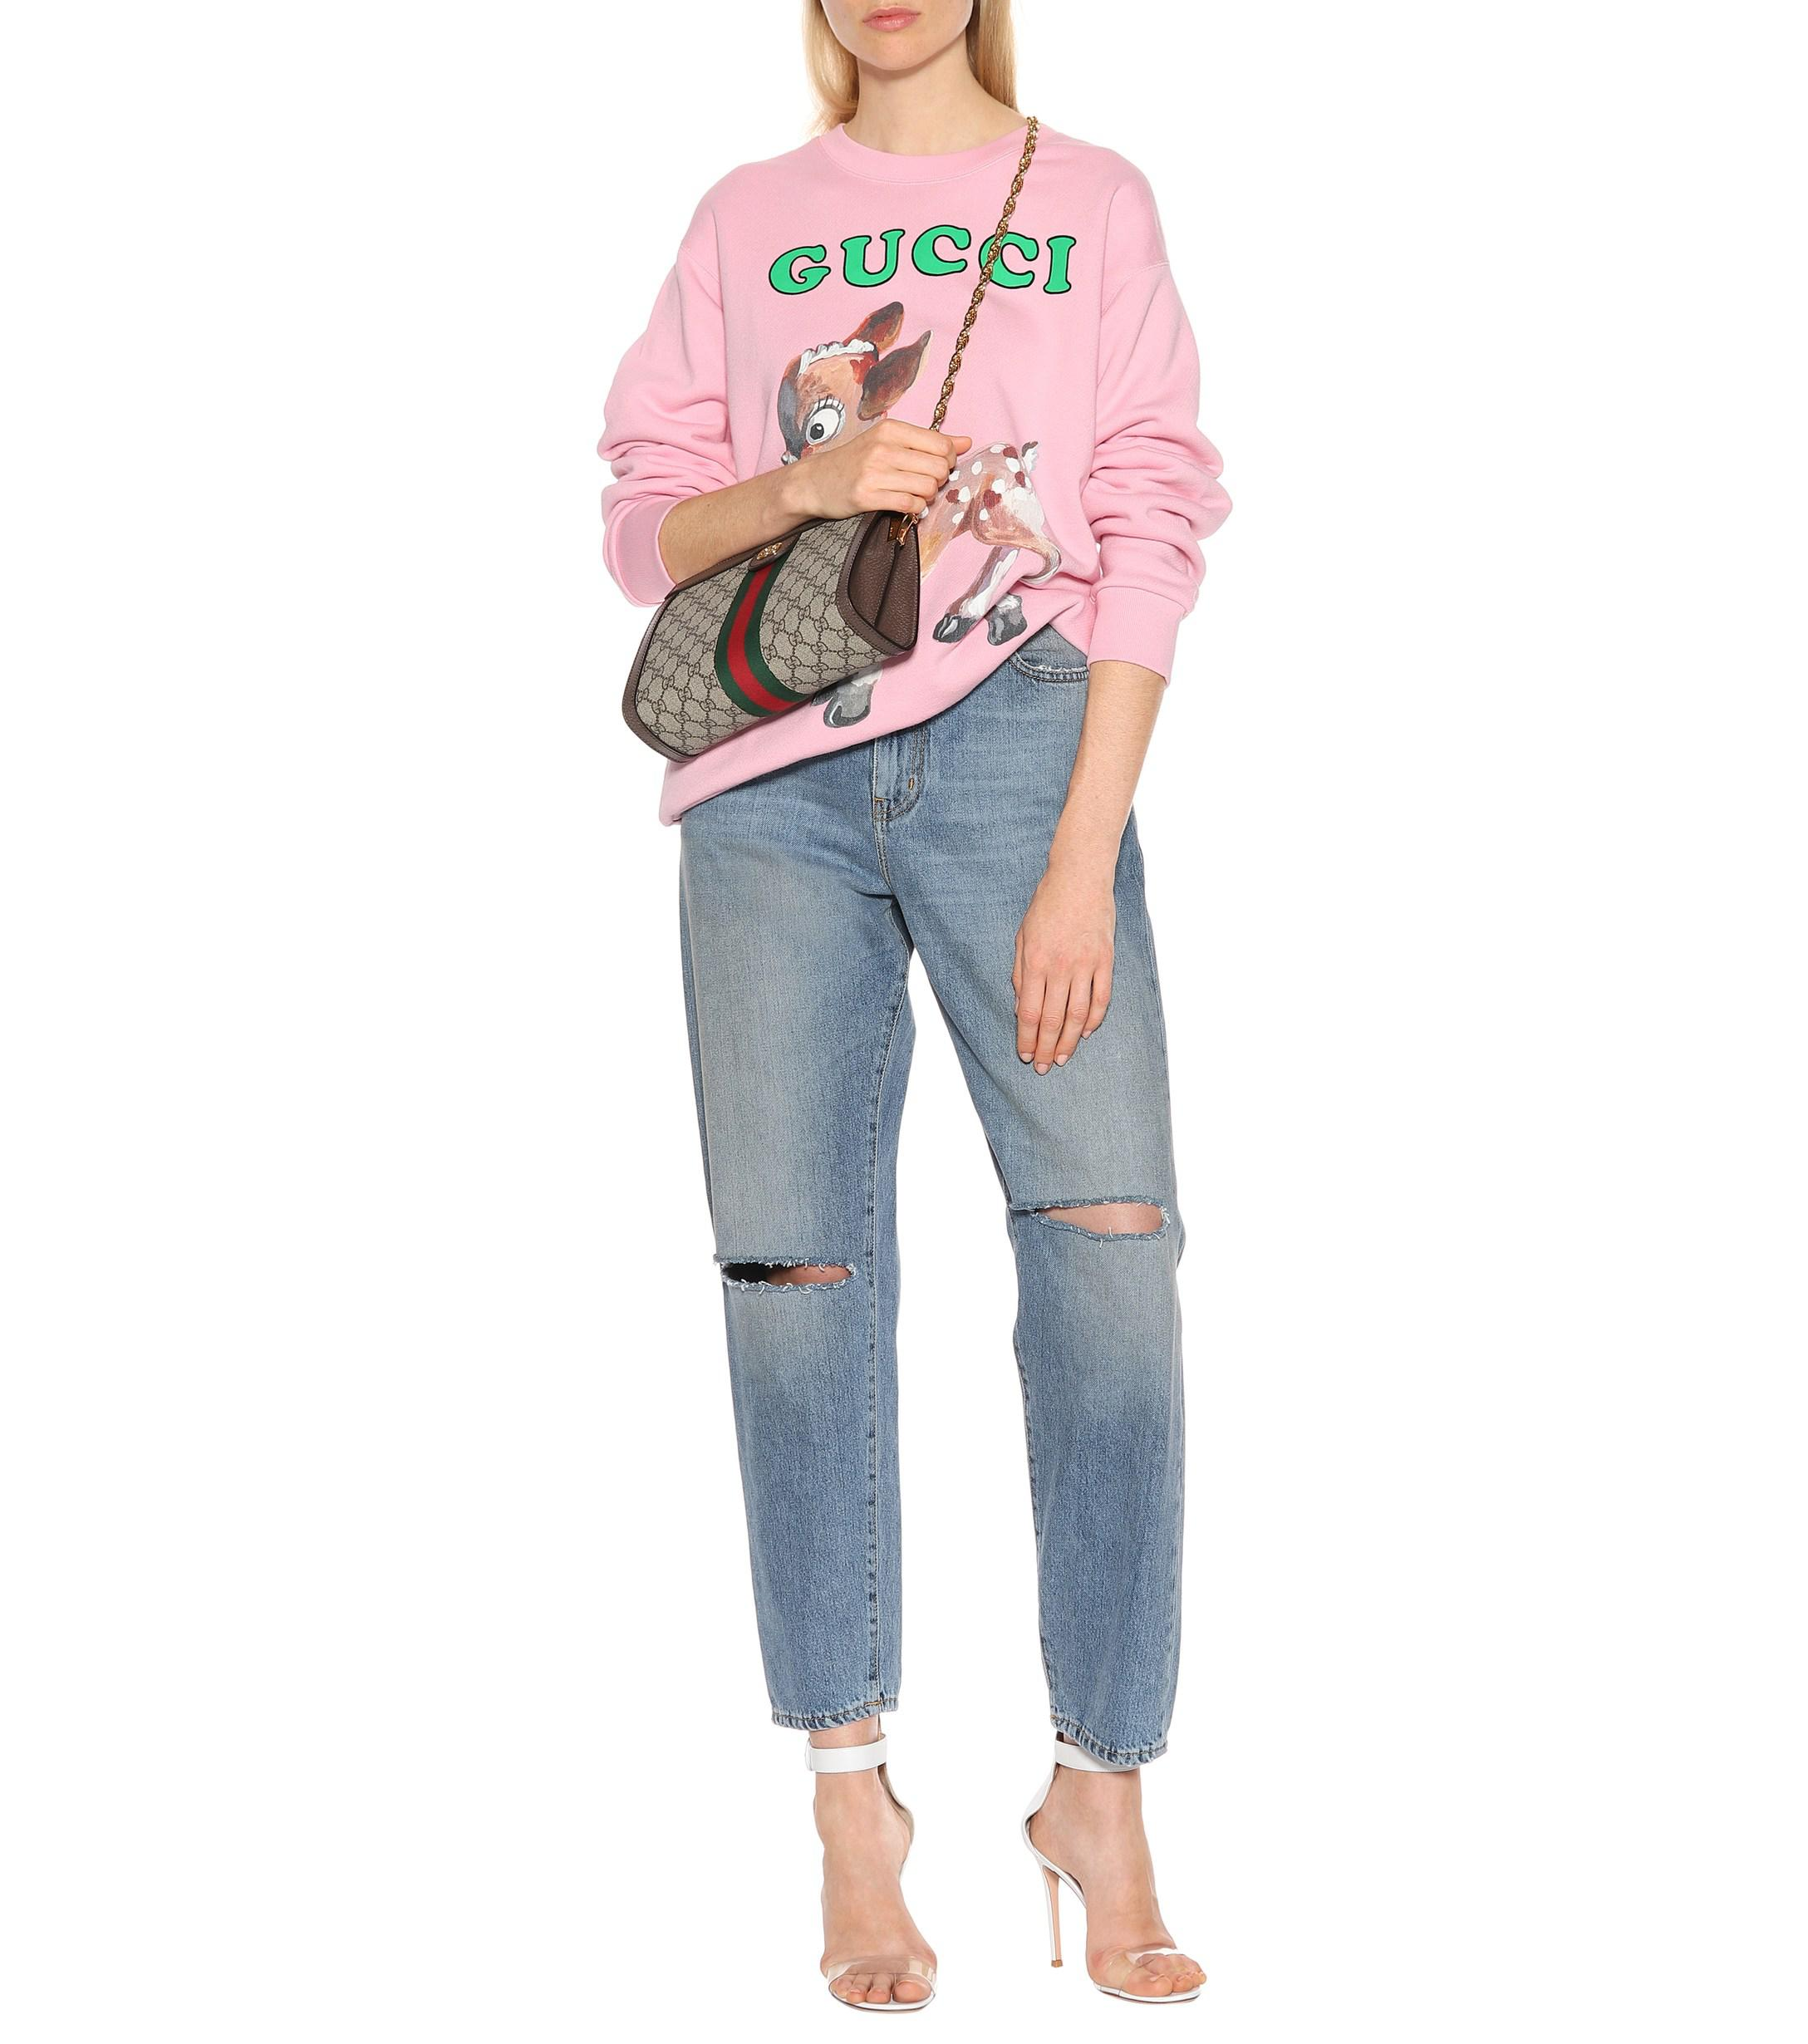 69a73d6ef7c Gucci Oversize Sweatshirt With Fawn in Pink - Lyst